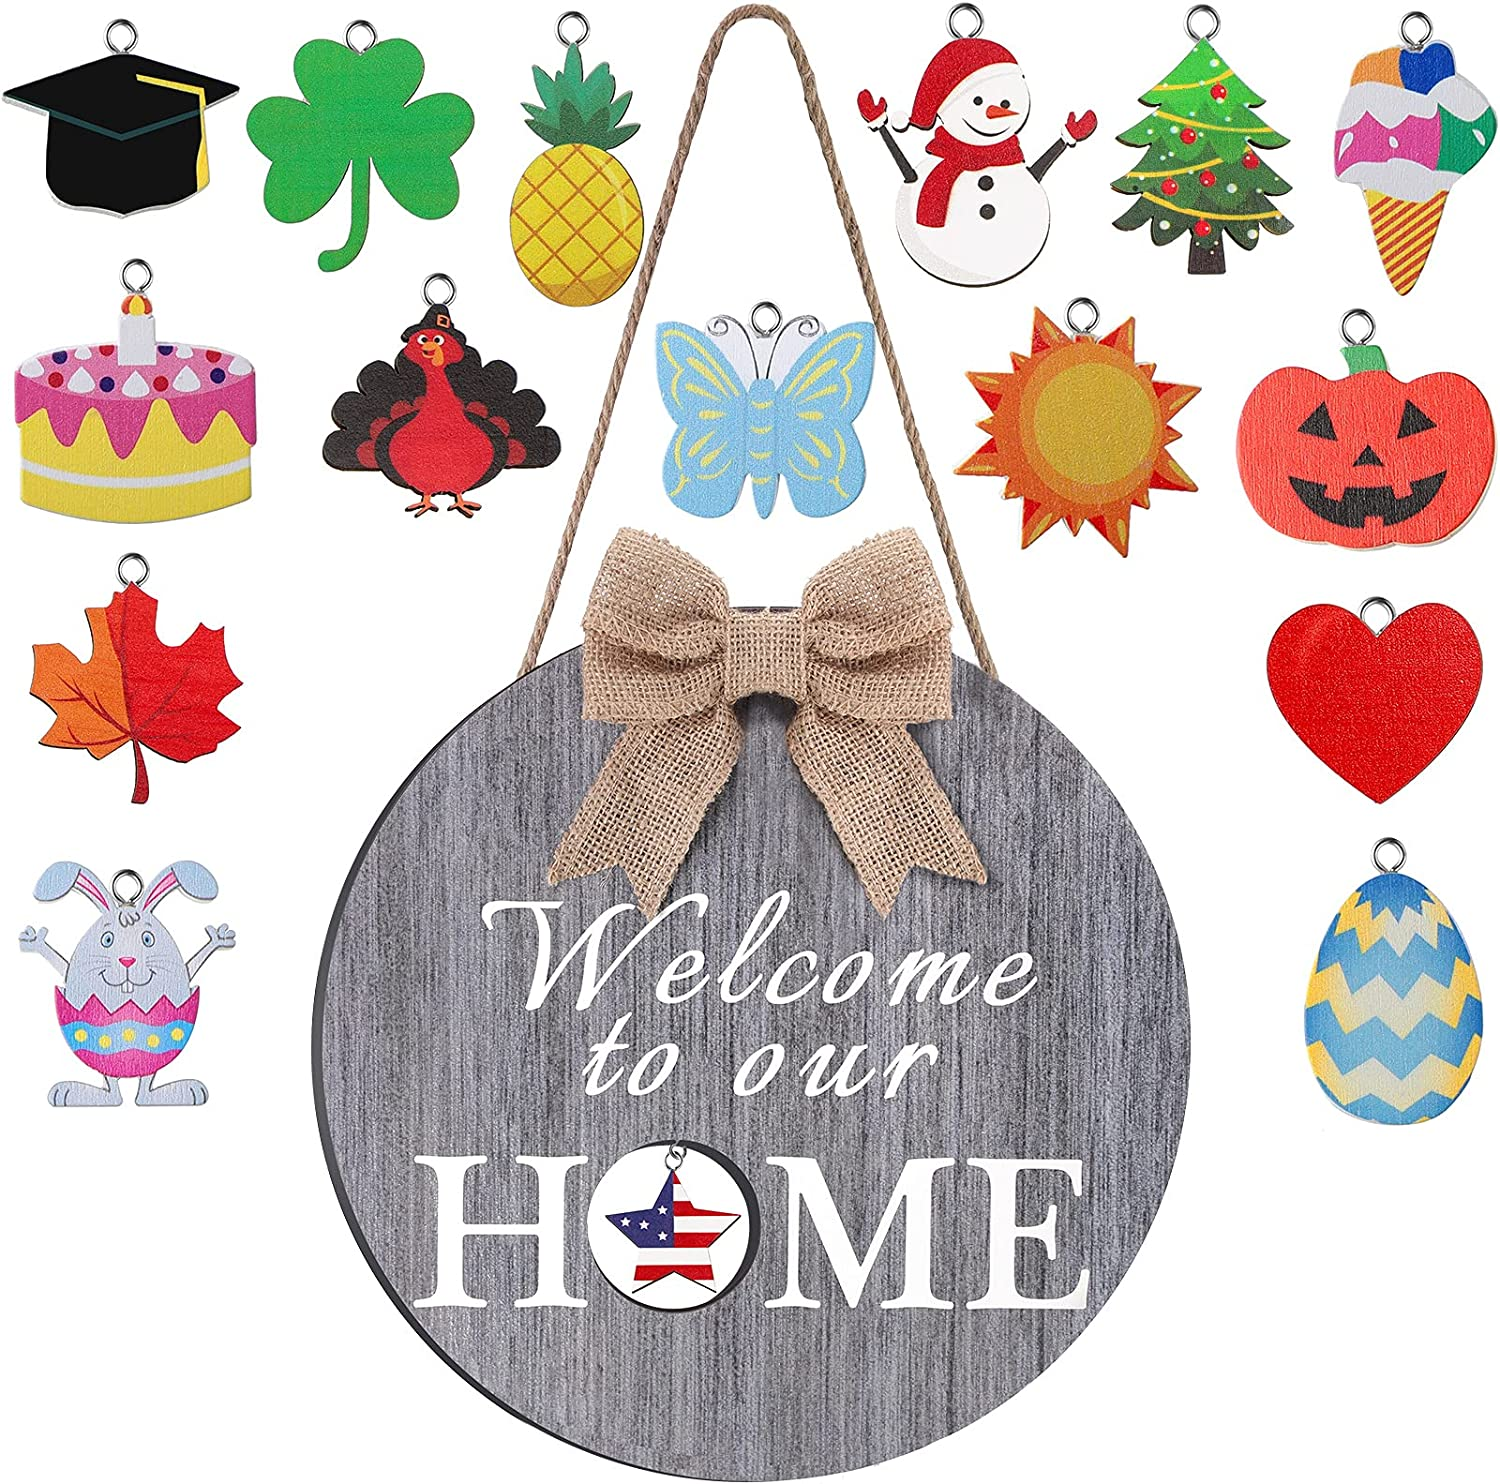 Seasonal Welcome Door Sign Interchangeable Welcome to Our Home Hanging Sign Round Wood Hanging Wreath Wood Front Door Wall Decoration with Burlap Bow, 16 Pieces Seasonal Ornament for Door (Gray)